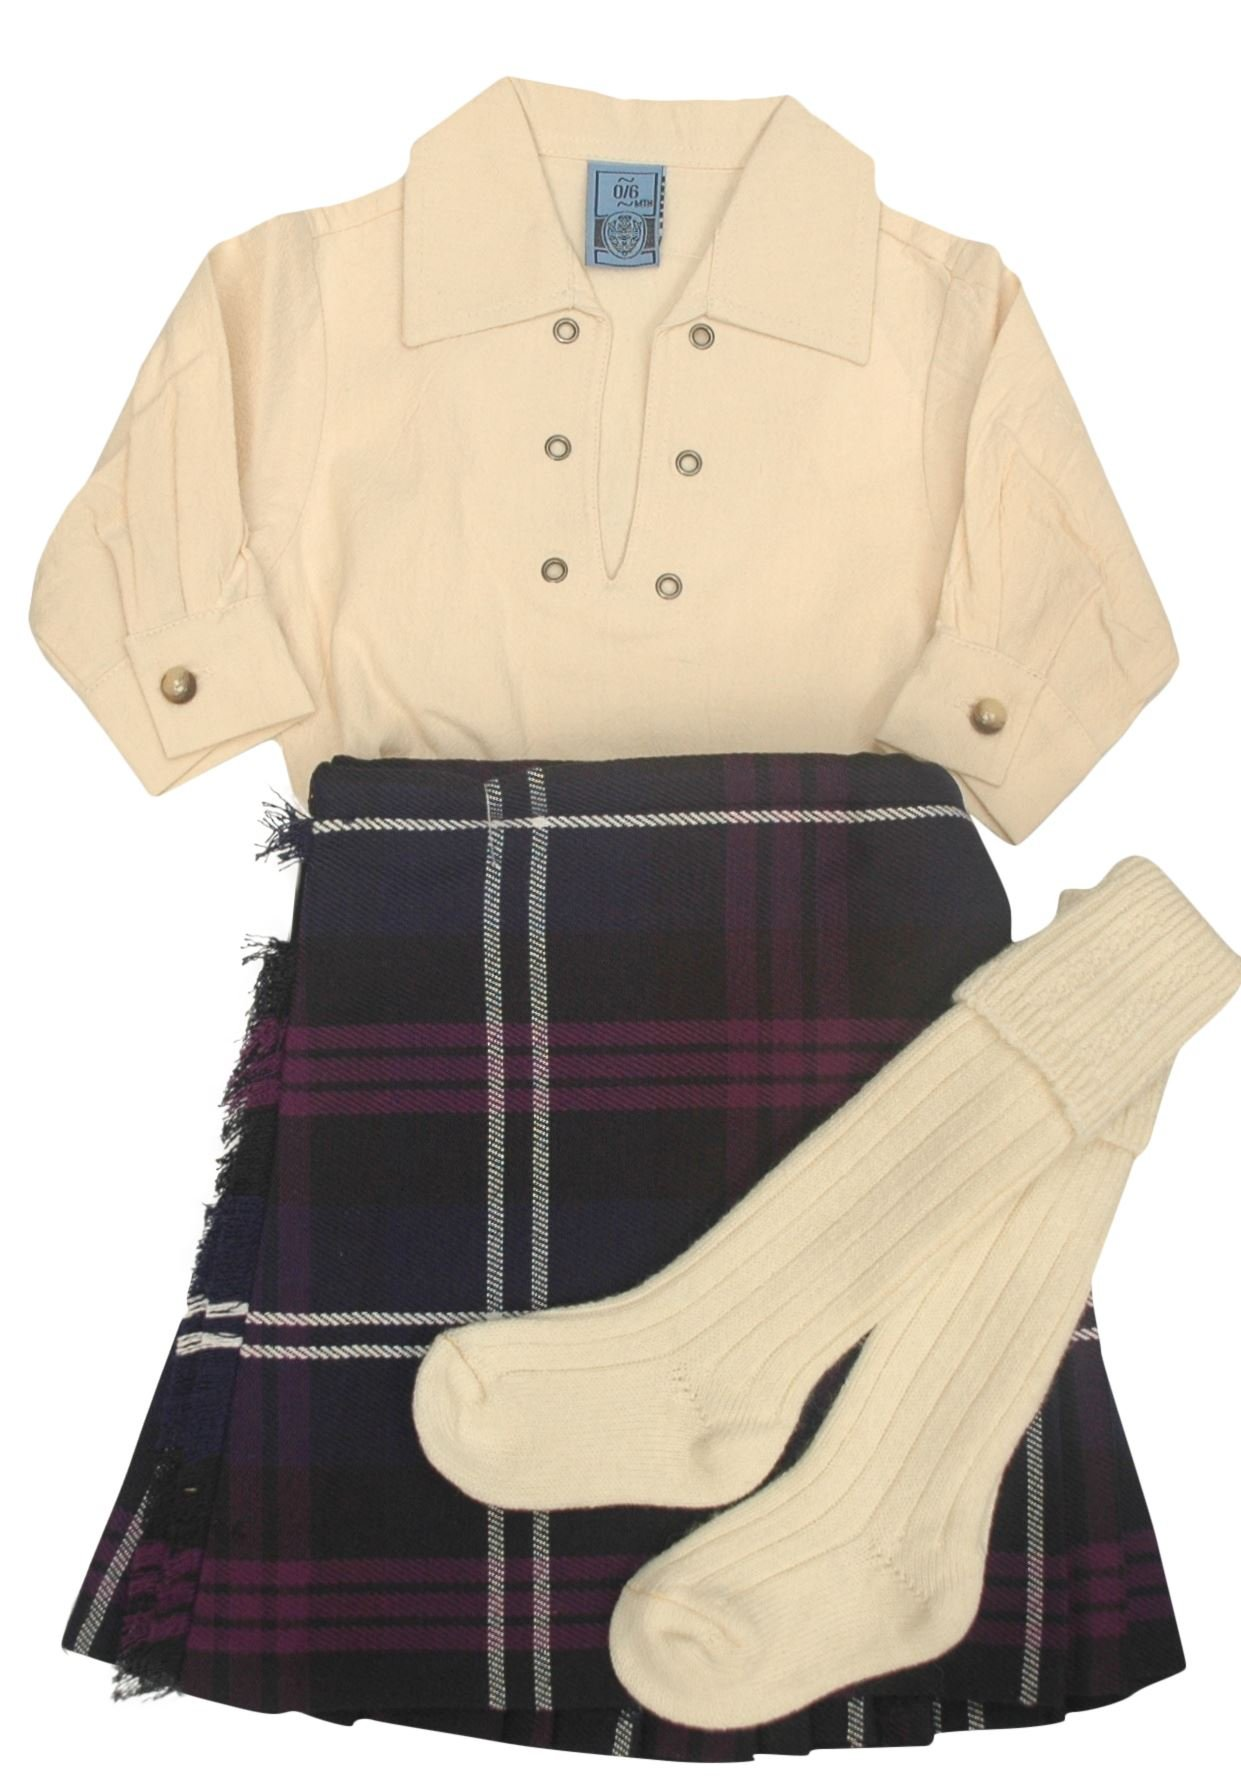 Boys Heritage of Scotland Tartan Kilt Outfit Set with Hose and Shirt (9-10 Years)